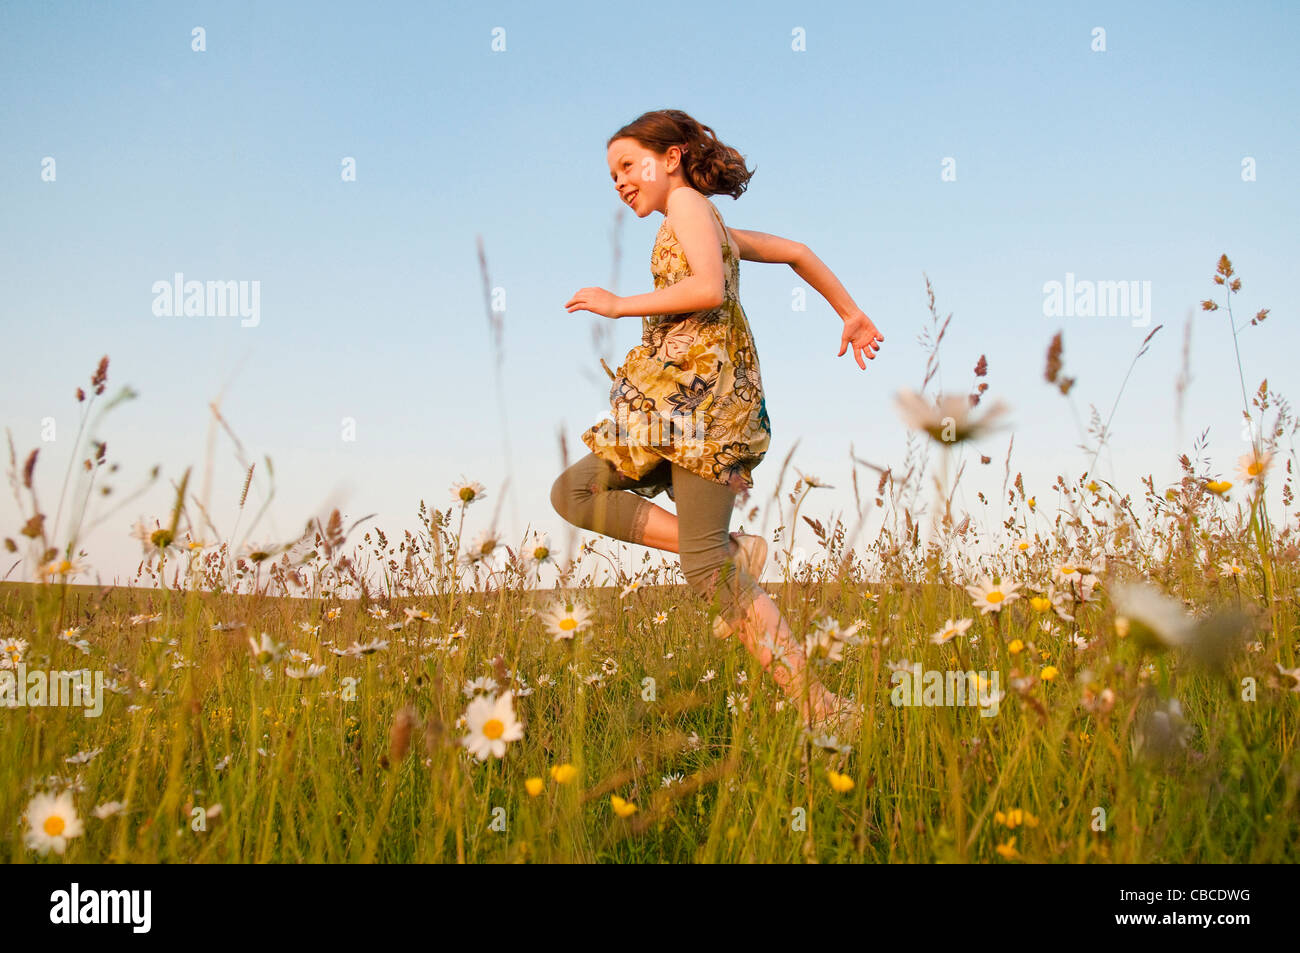 Girl Running In Field Of Flowers Stock Photo 41456284 Alamy